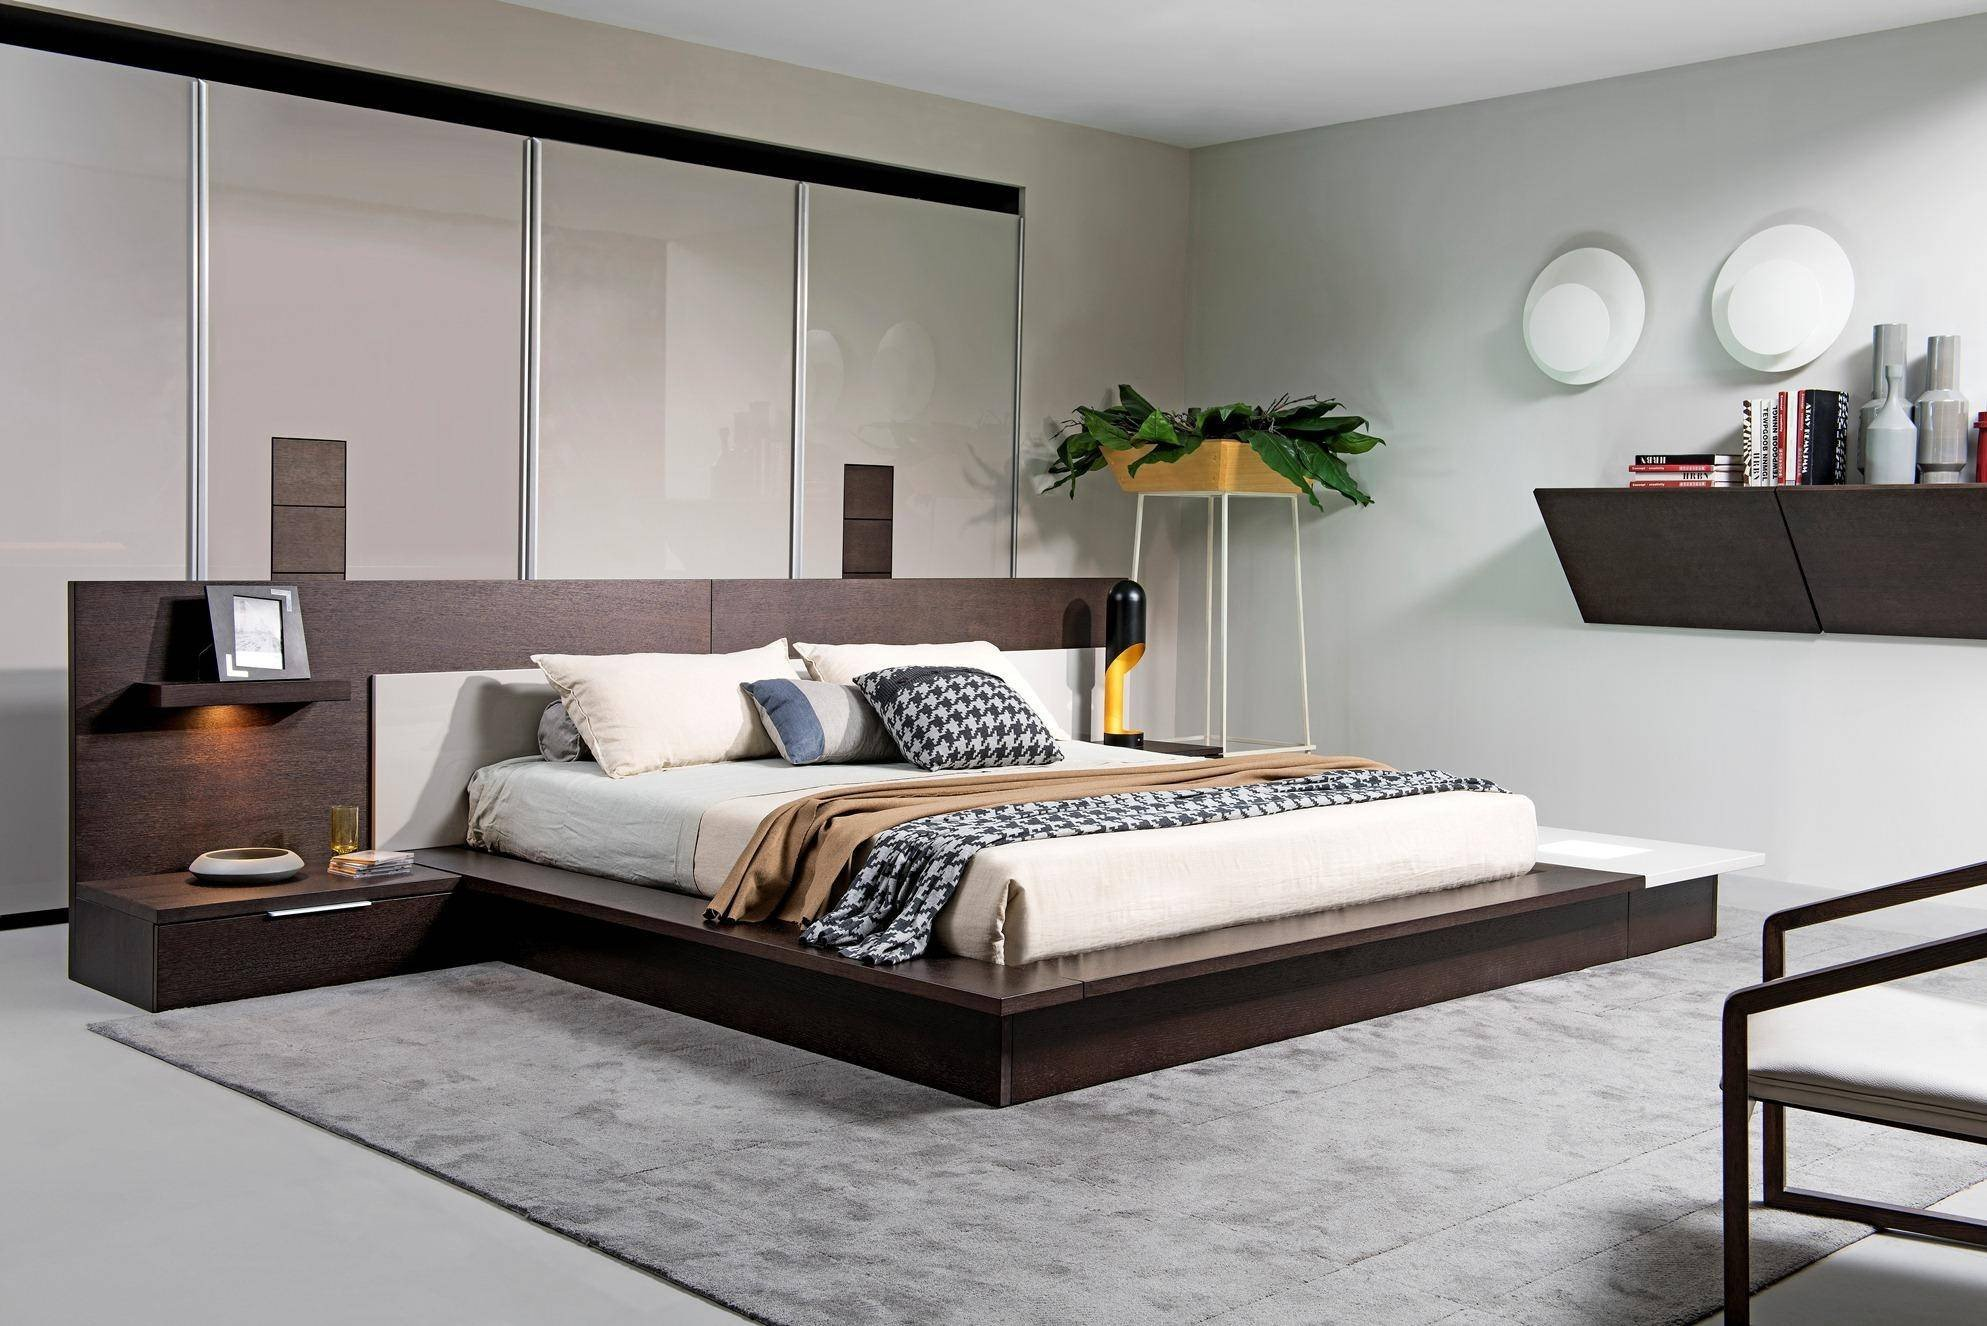 Light Wood Bedroom Furniture Unique Vig Modrest torino Brown Oak Grey Queen Bed W Lights Built